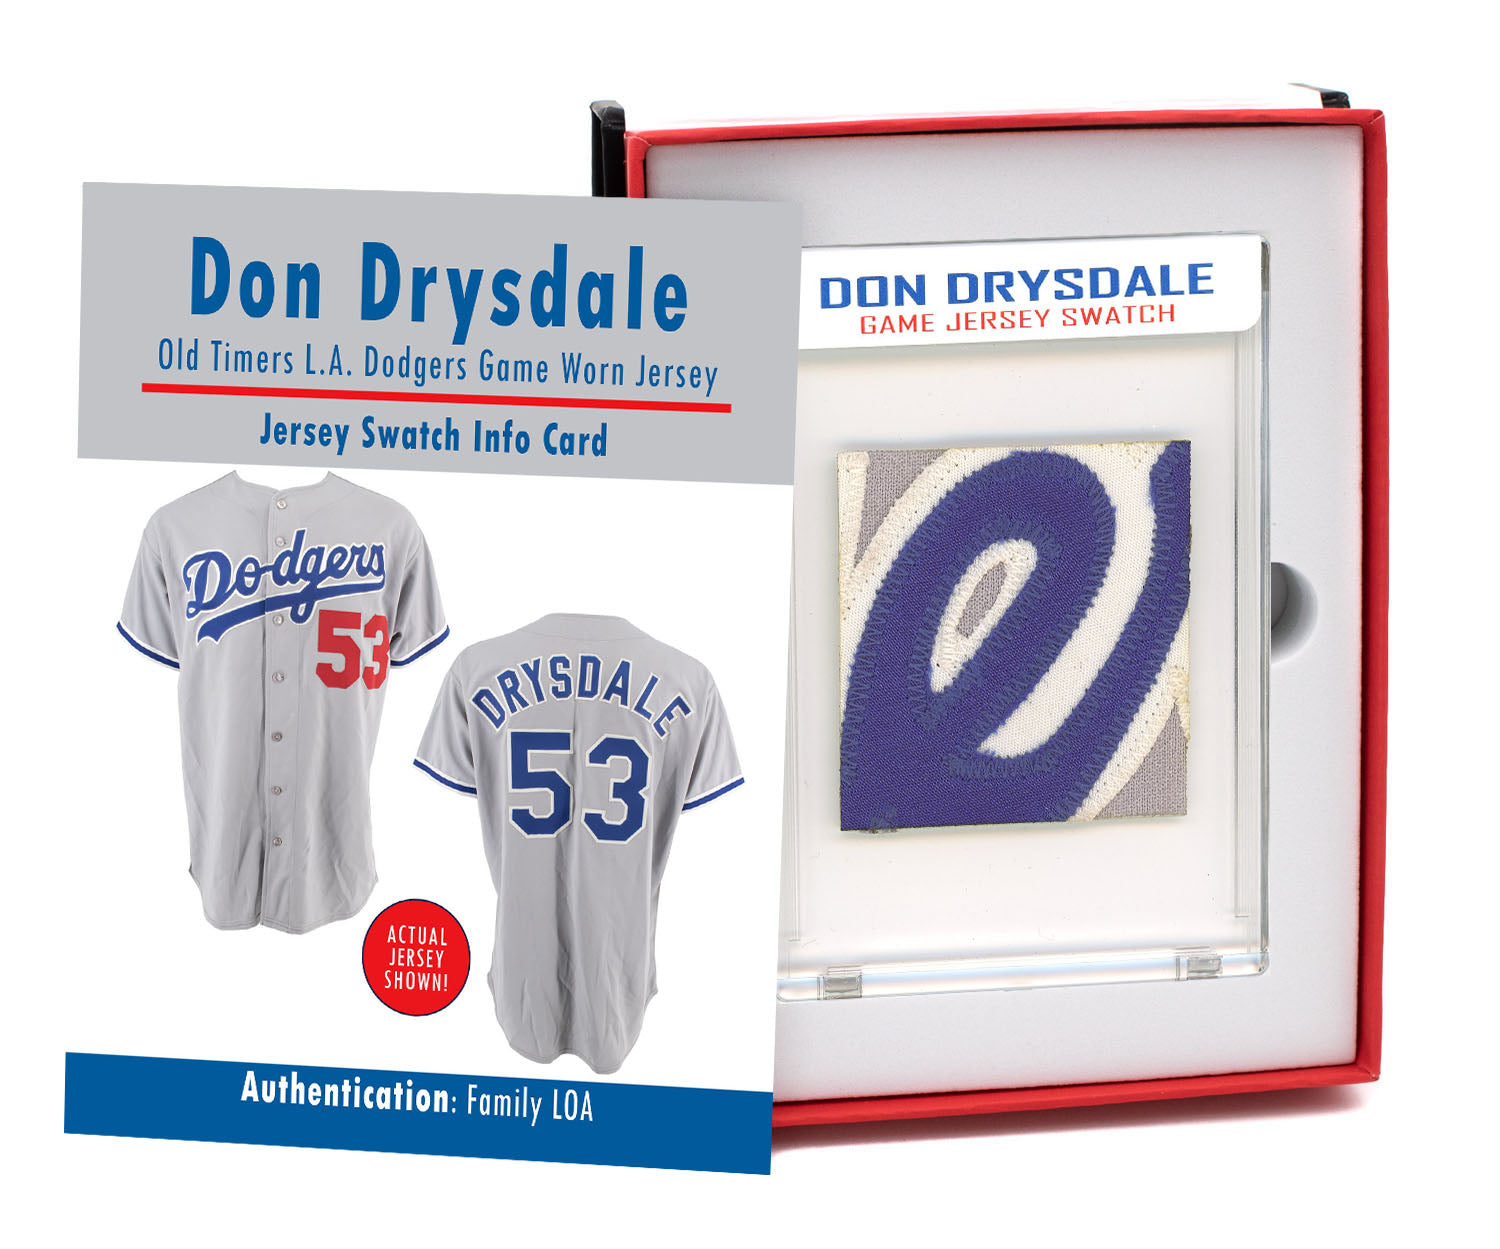 DON DRYSDALE OLD TIMERS DODGERS GAME WORN JERSEY MYSTERY SEALED SWATCH BOX!